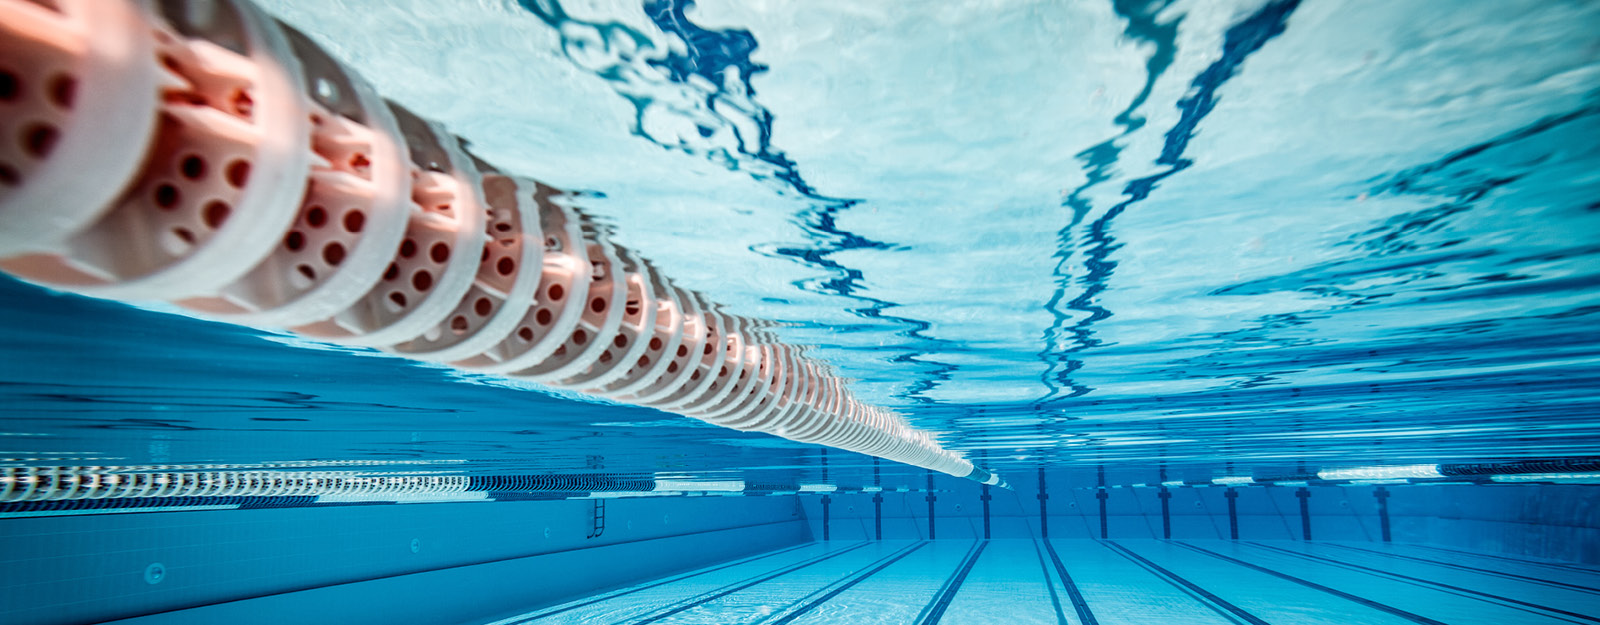 Forma gym pool schedule - Campbell community center swimming pool ...